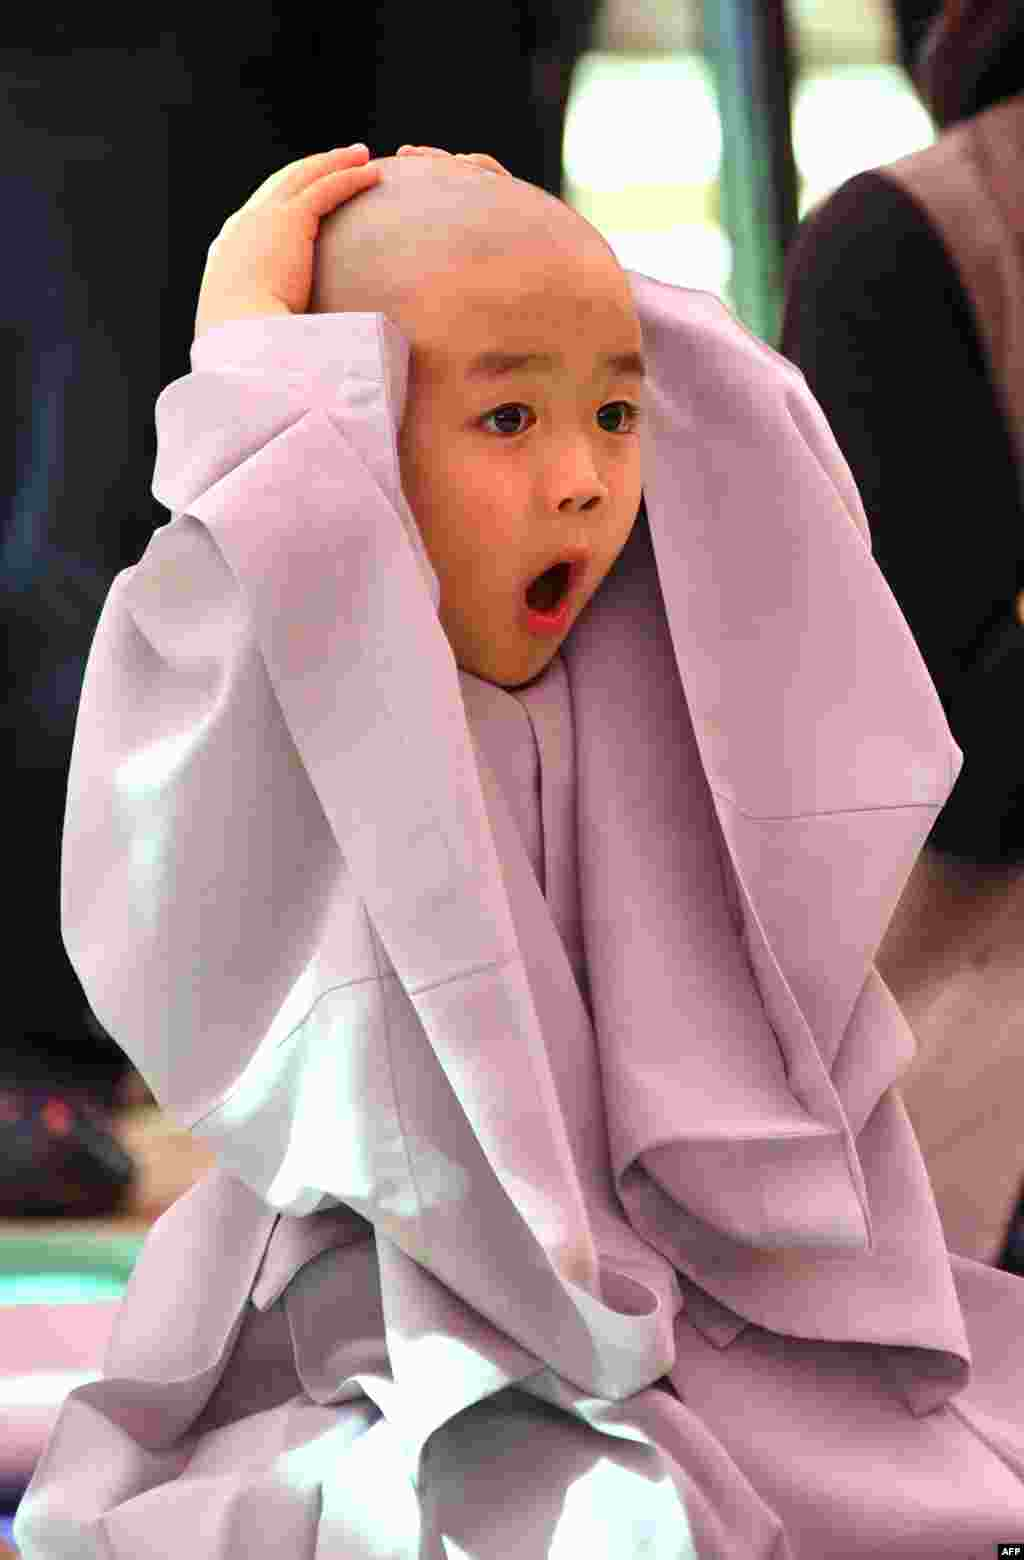 A child reacts after having his head shaved by Buddhist monks during a ceremony entitled 'Children Becoming Buddhist Monks', at the Jogye temple in Seoul, South Korea.